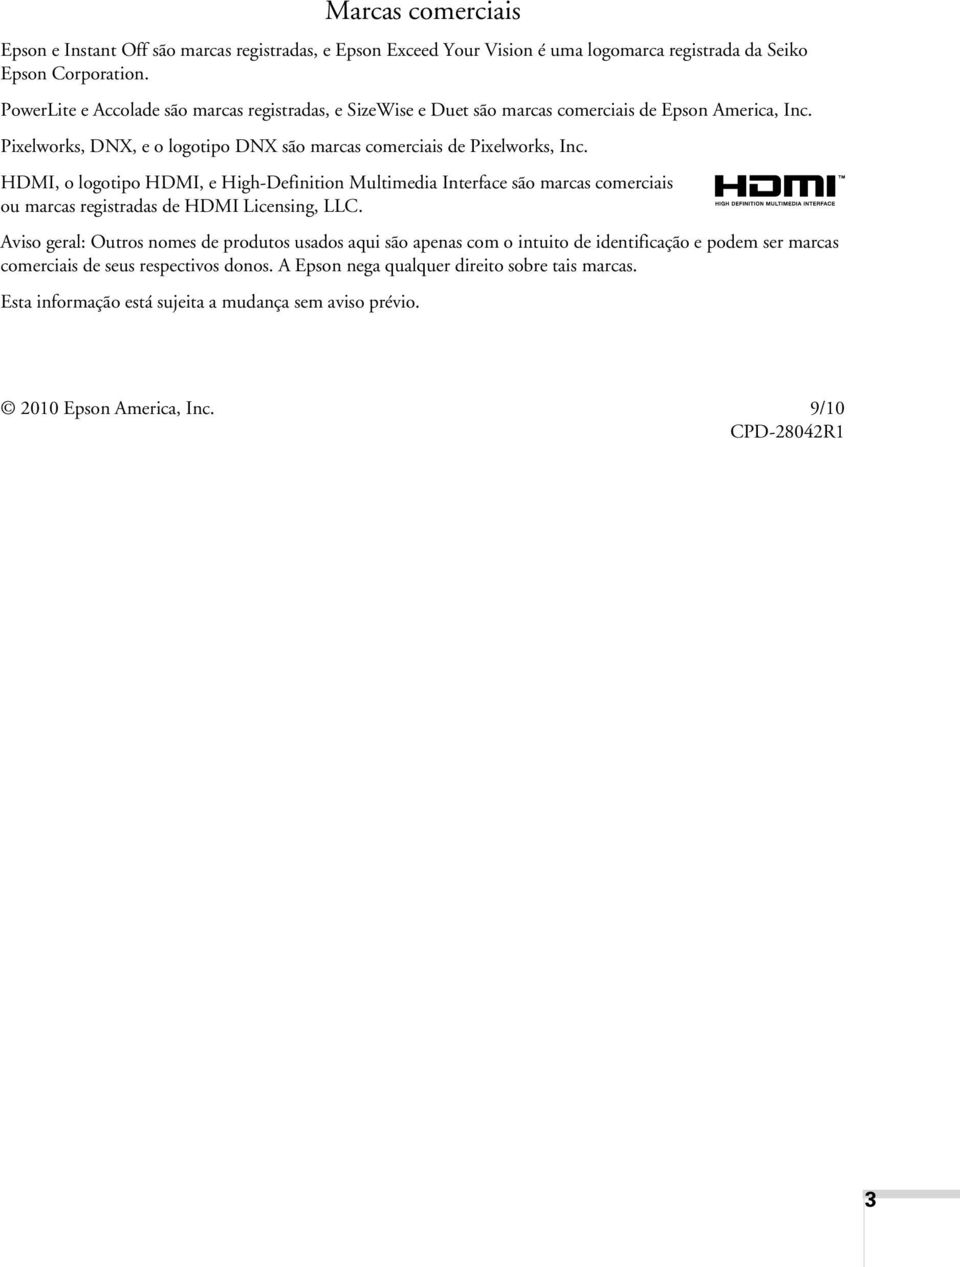 HDMI, o logotipo HDMI, e High-Definition Multimedia Interface são marcas comerciais ou marcas registradas de HDMI Licensing, LLC.